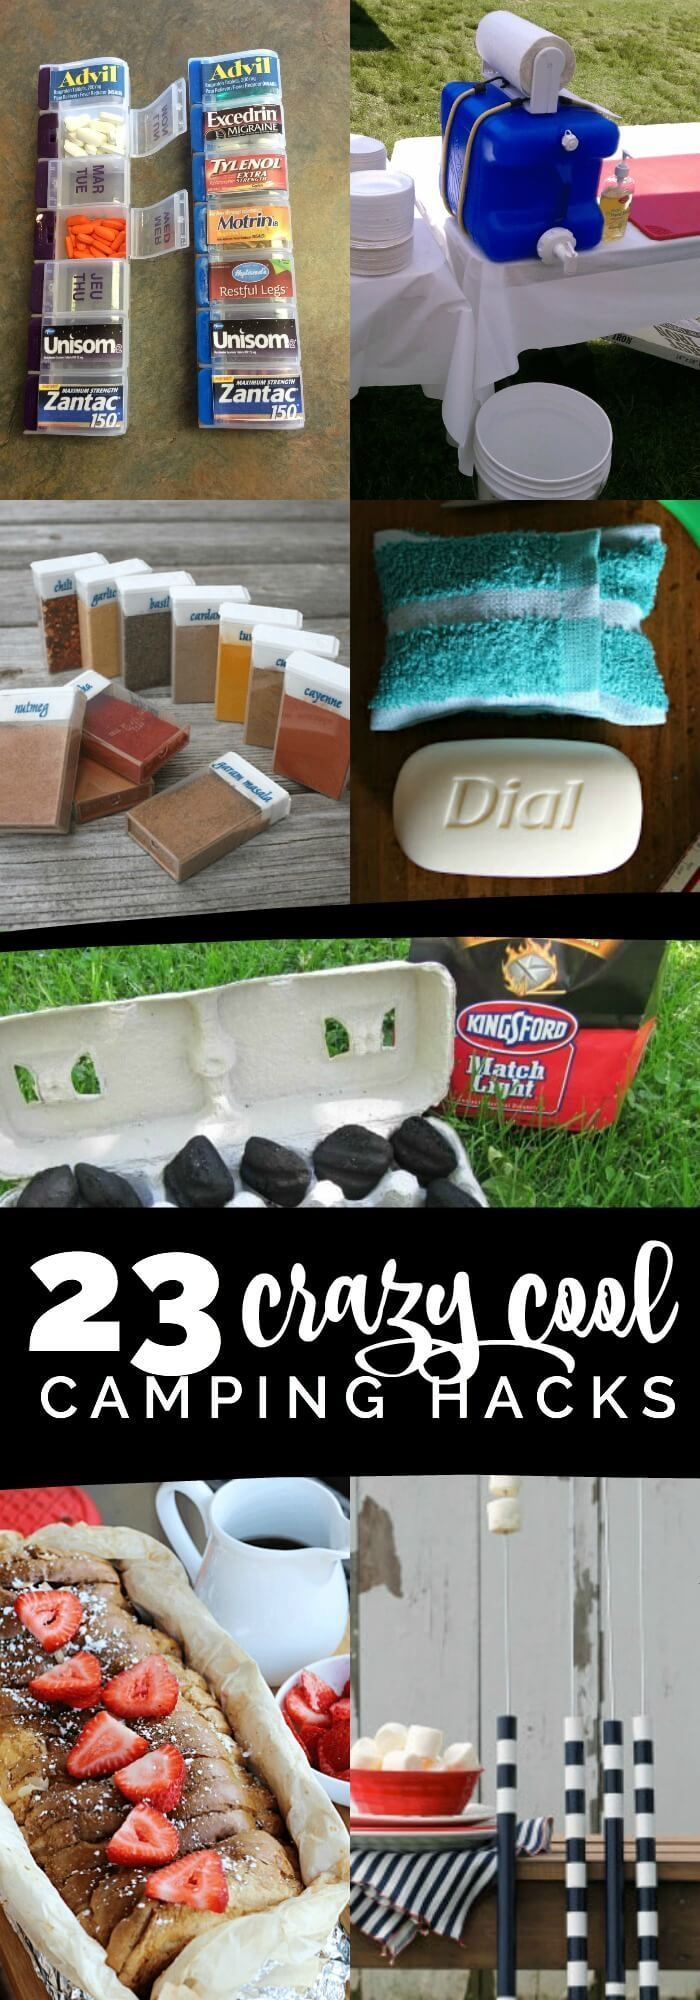 23 Crazy Cool Camping Ideas, Hacks Tips and Tricks via @spaceshipslb